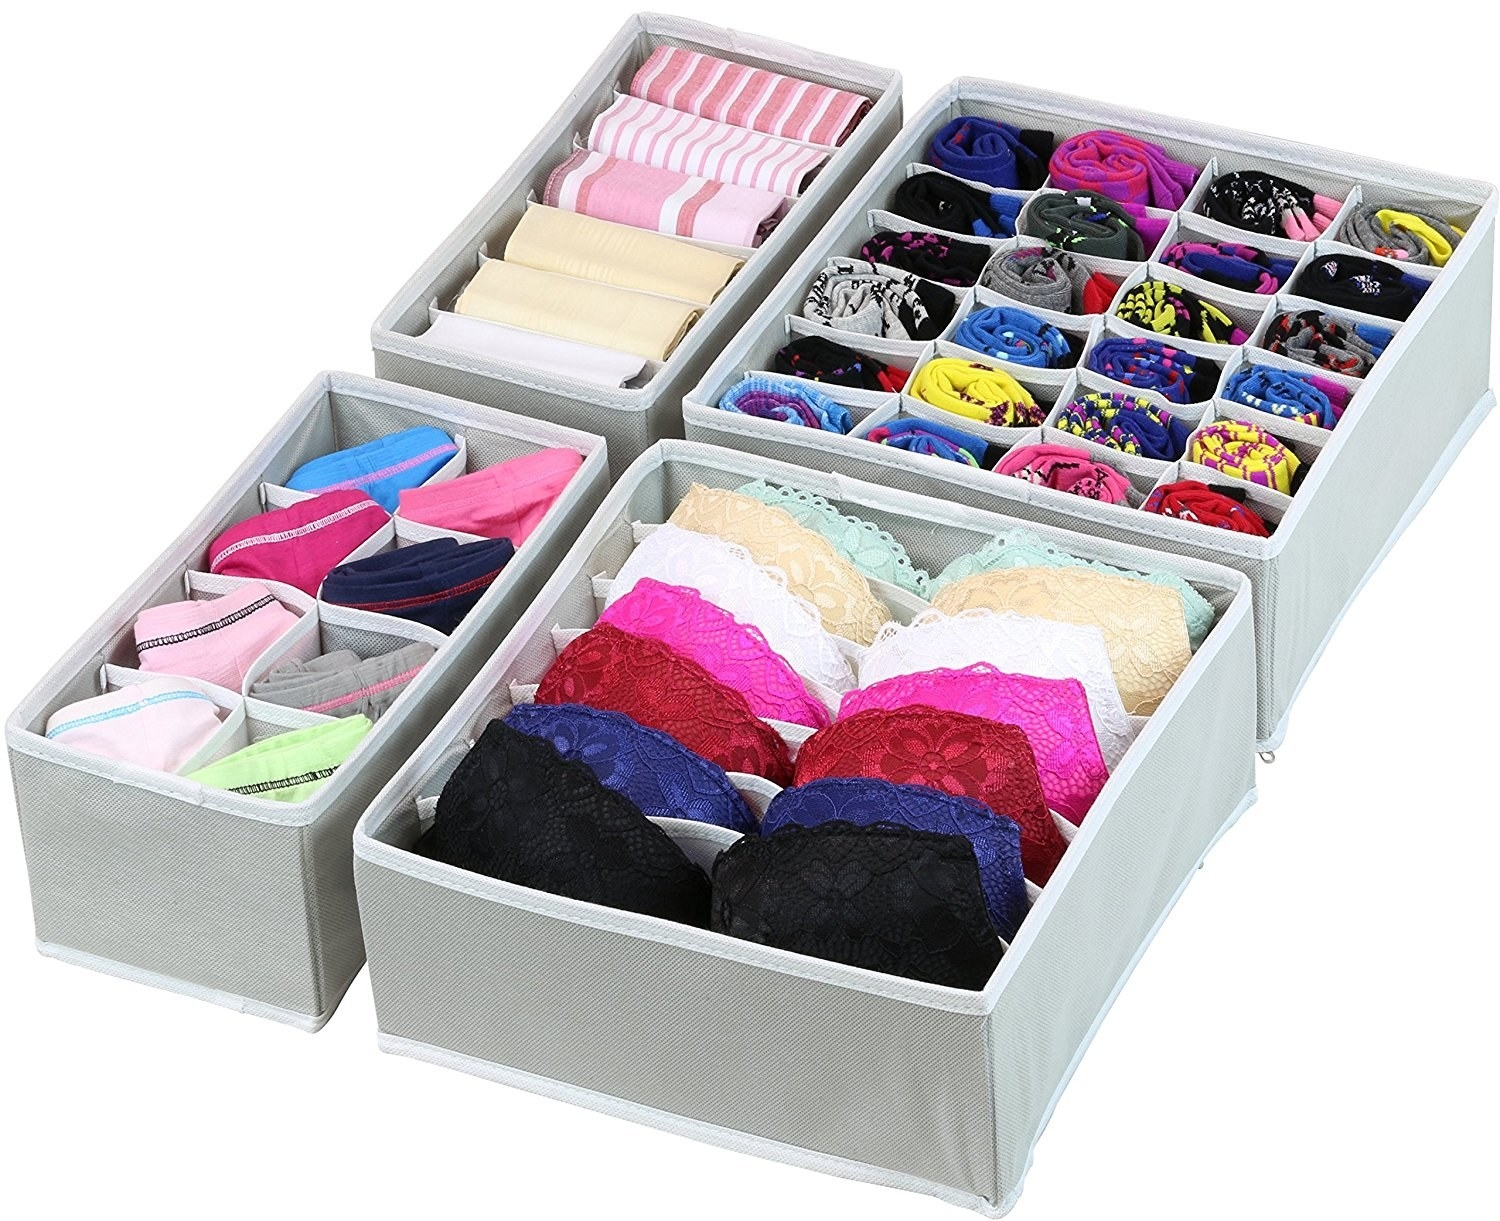 The set of four grey organizers with colorful garments in each